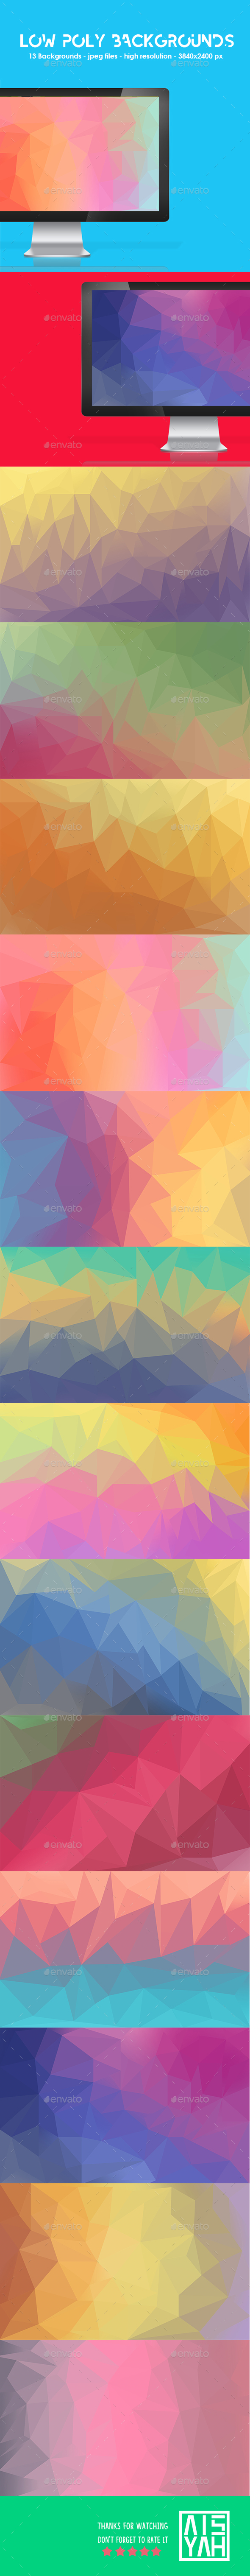 Low Poly Backgrounds - Backgrounds Graphics